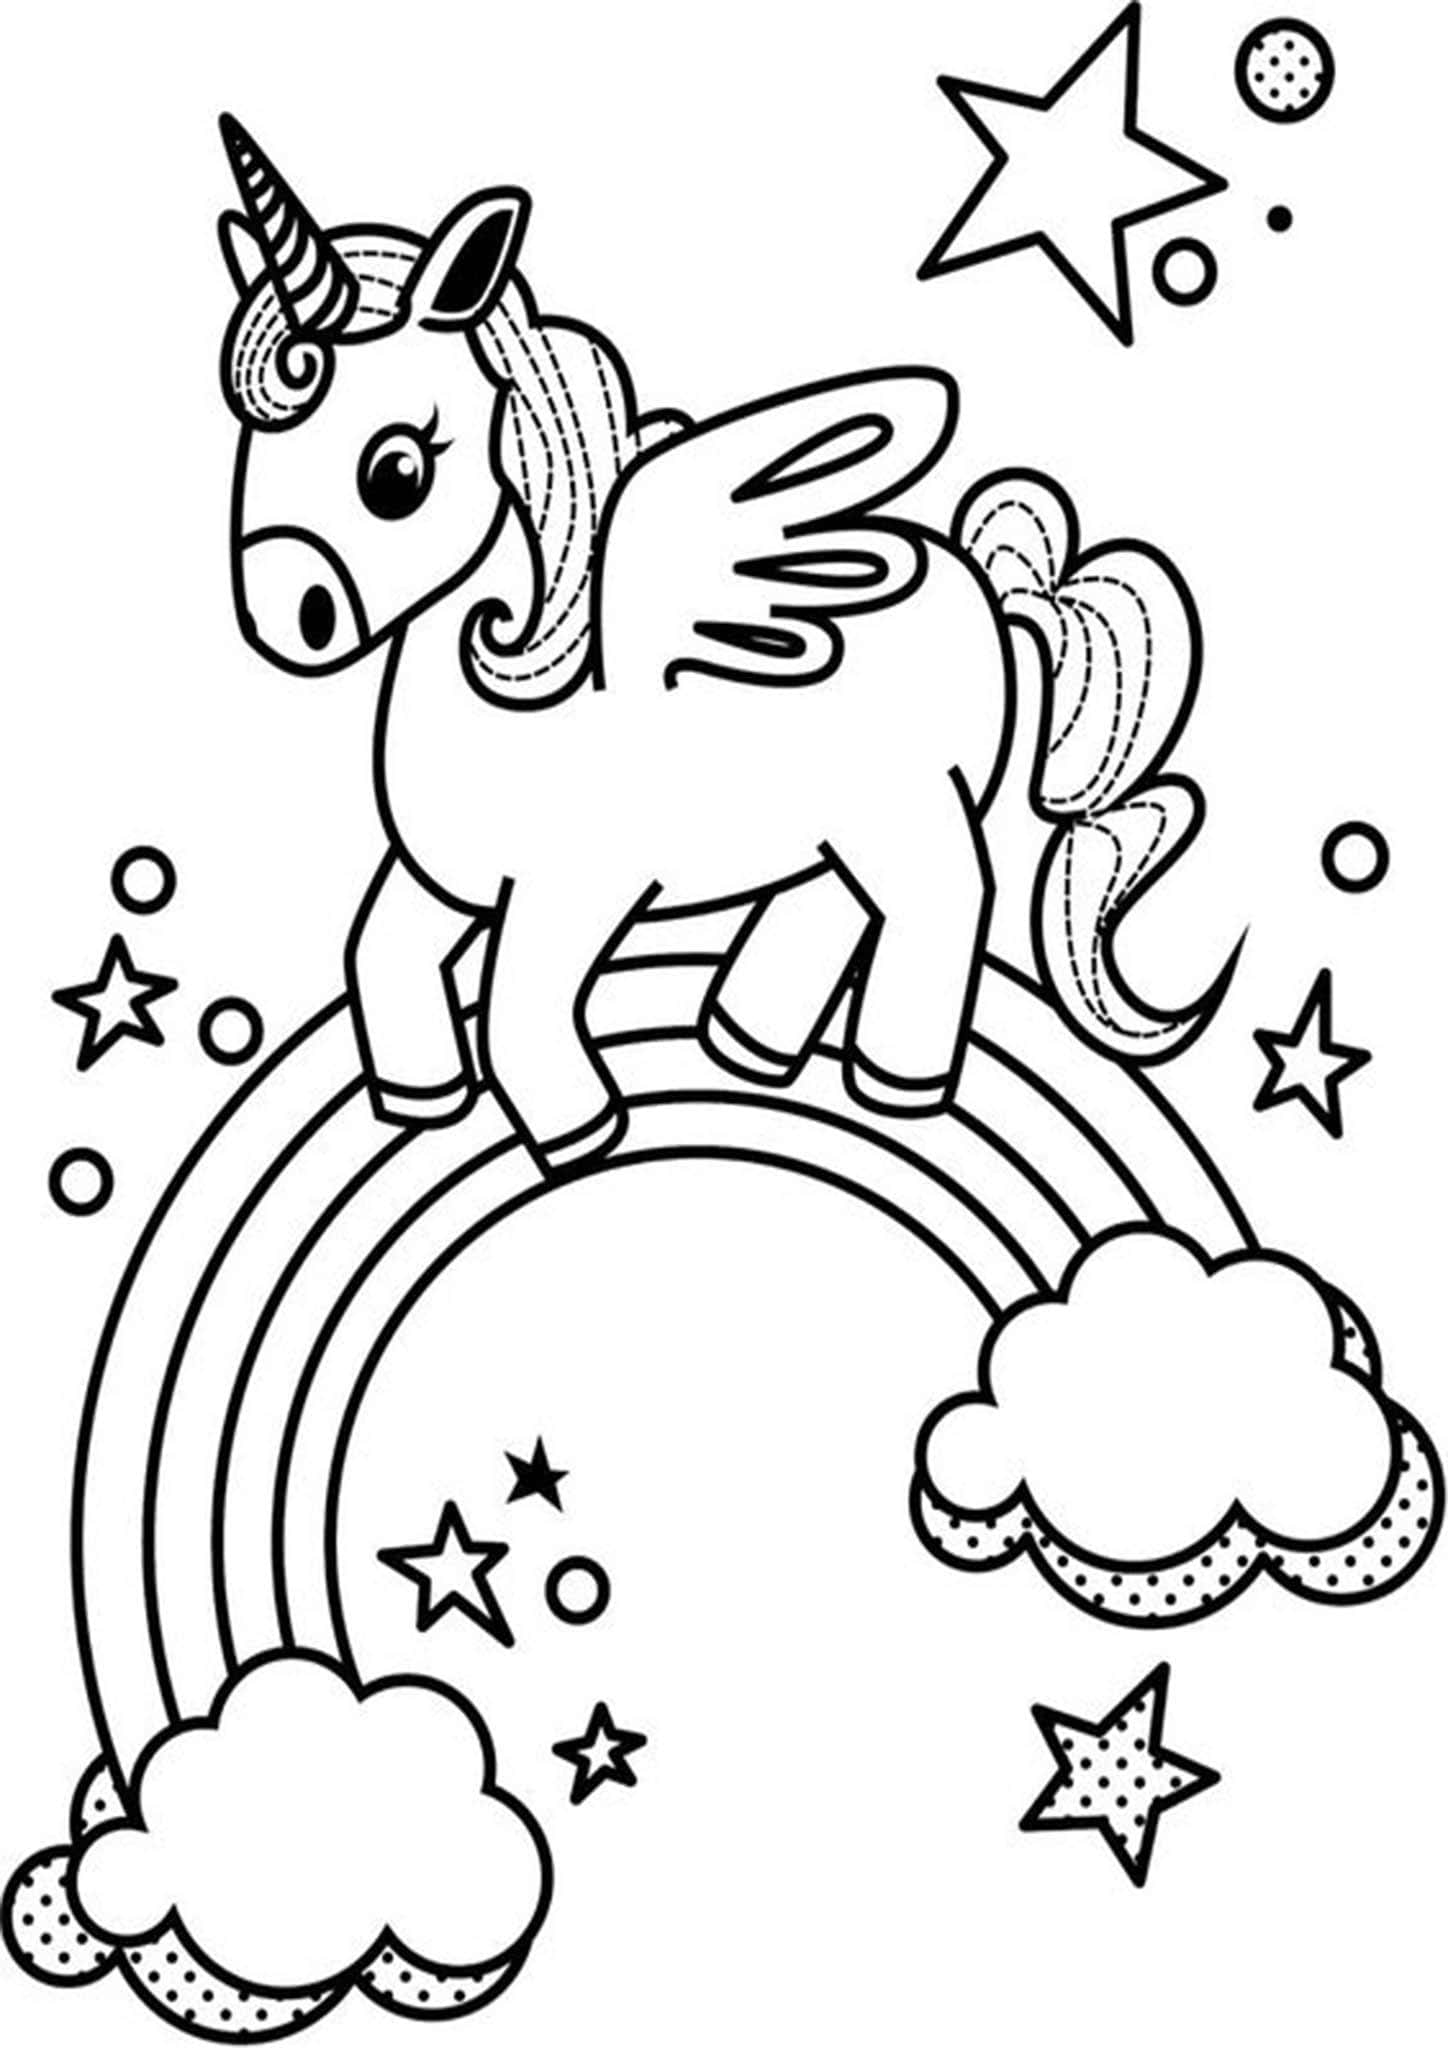 Free & Easy To Print Rainbow Coloring Pages - Tulamama